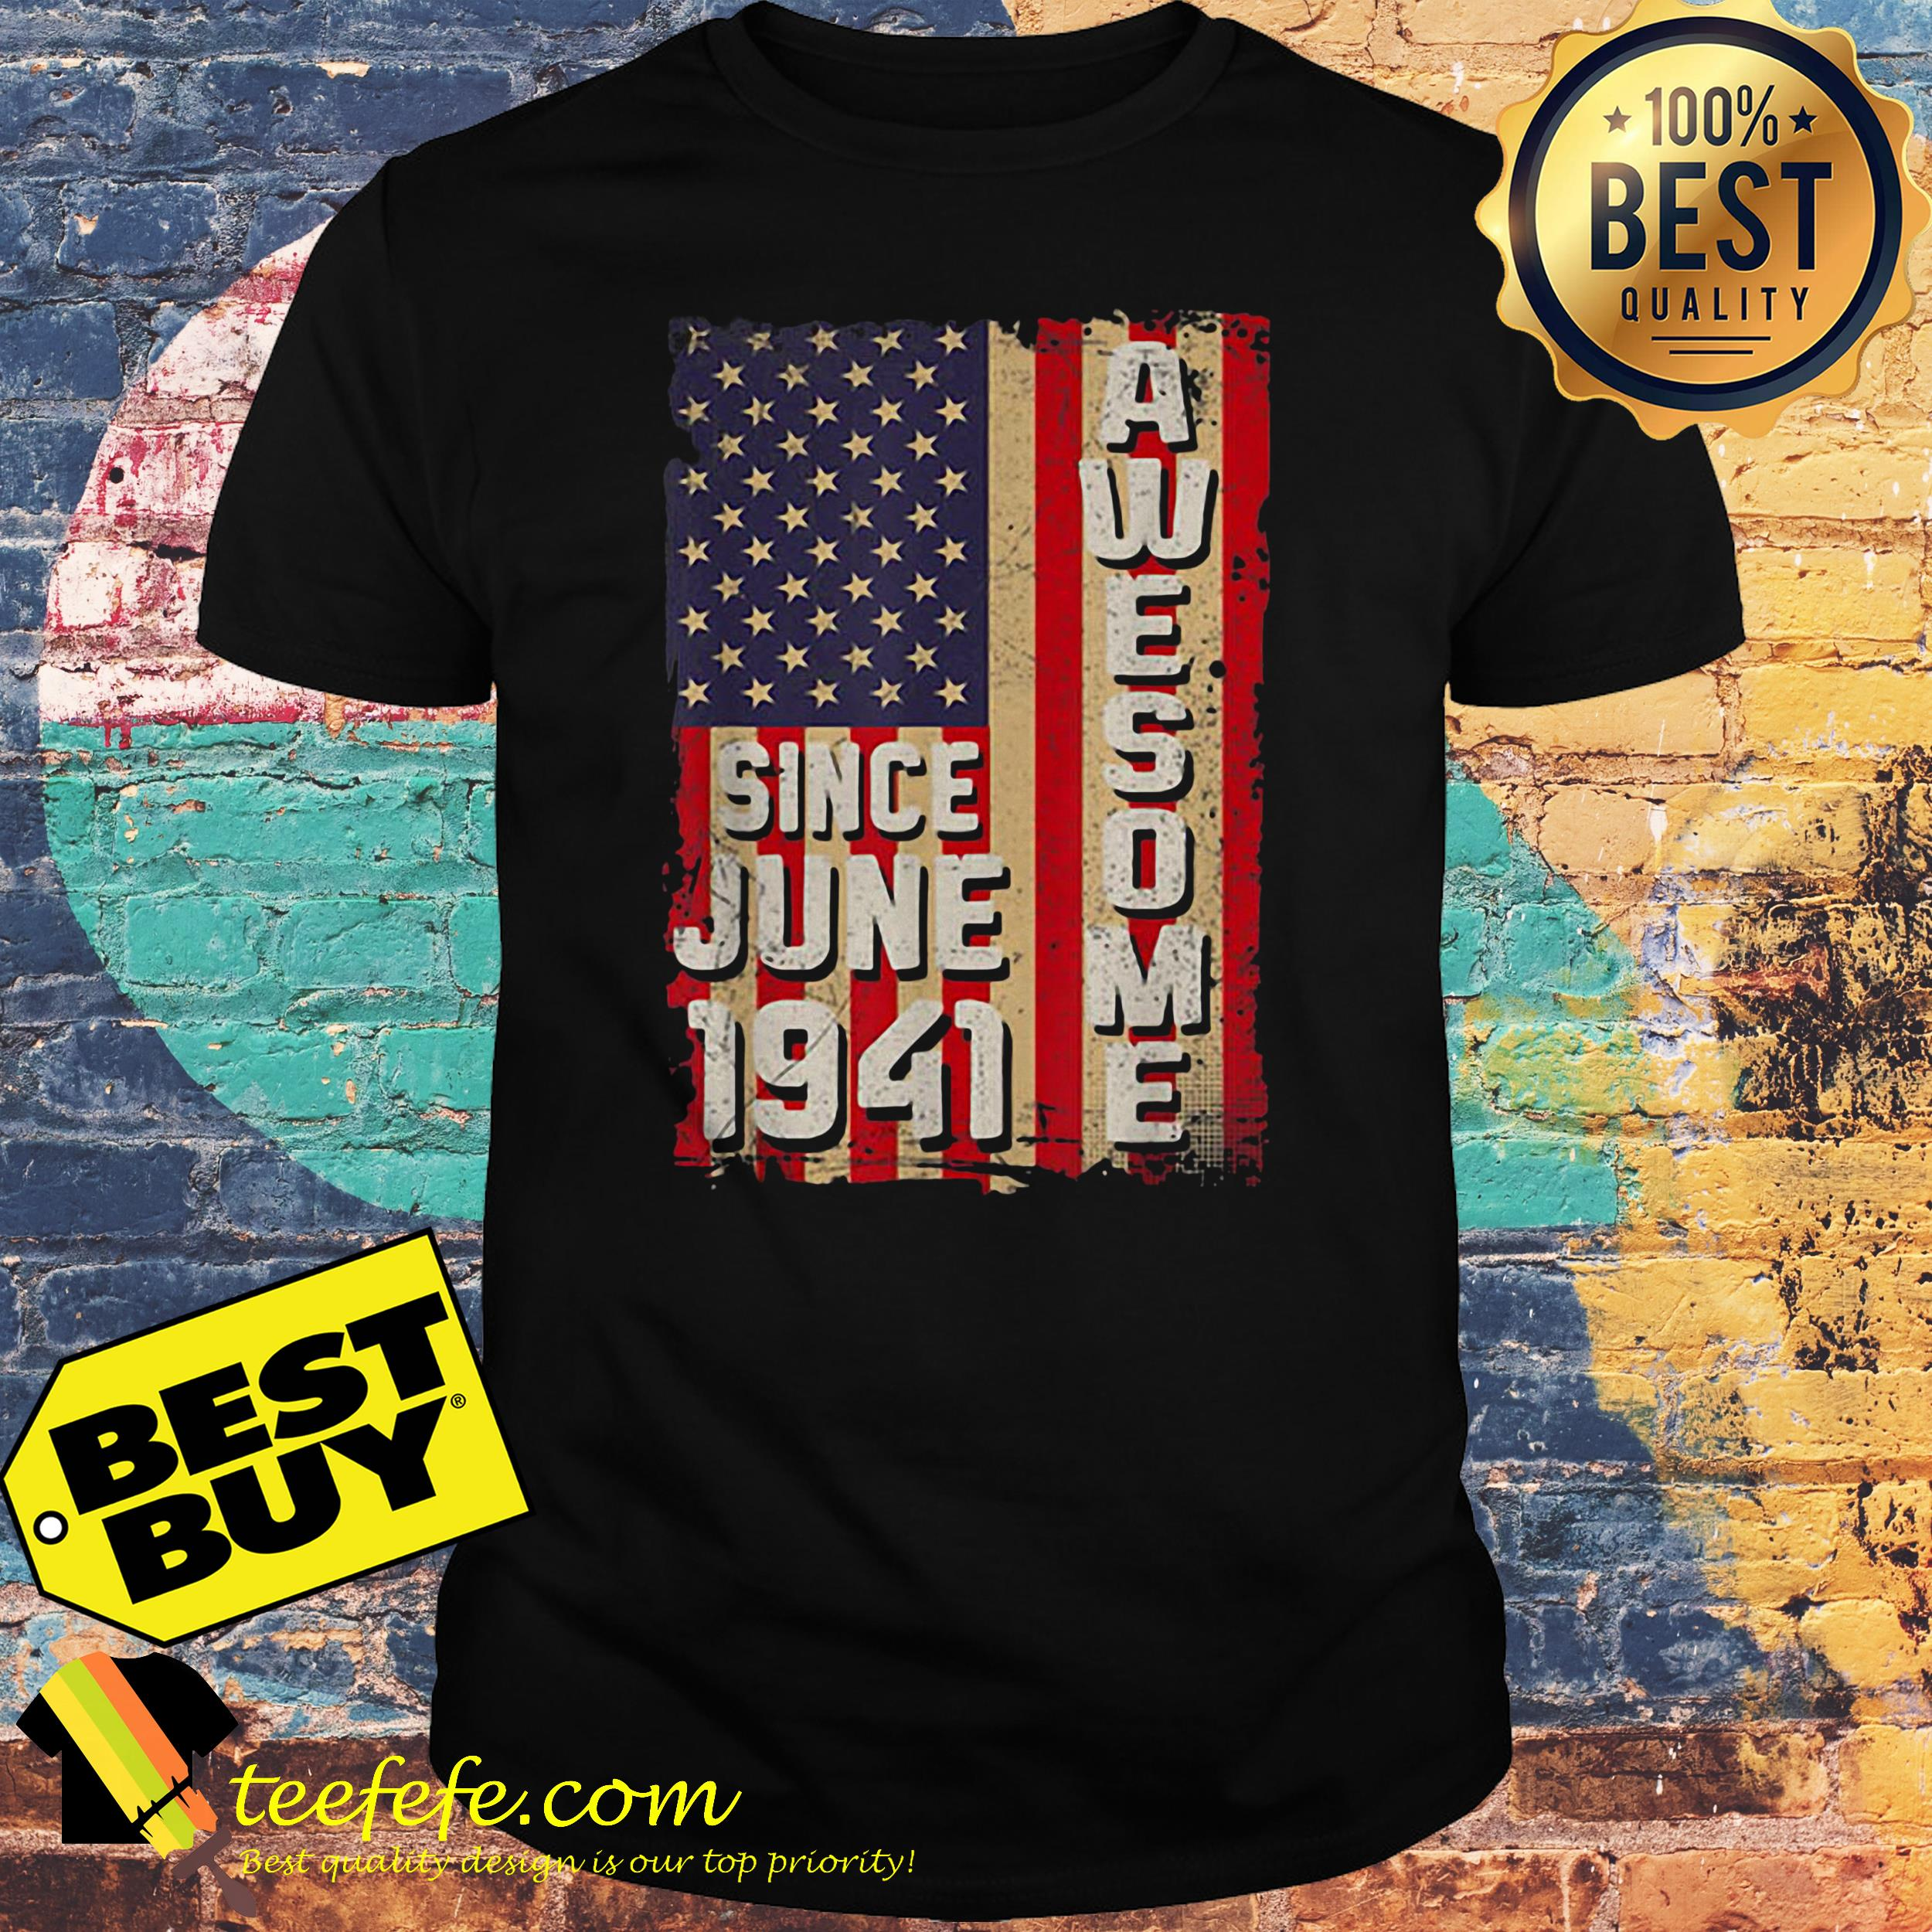 Awesome since June 1941 American flag shirt